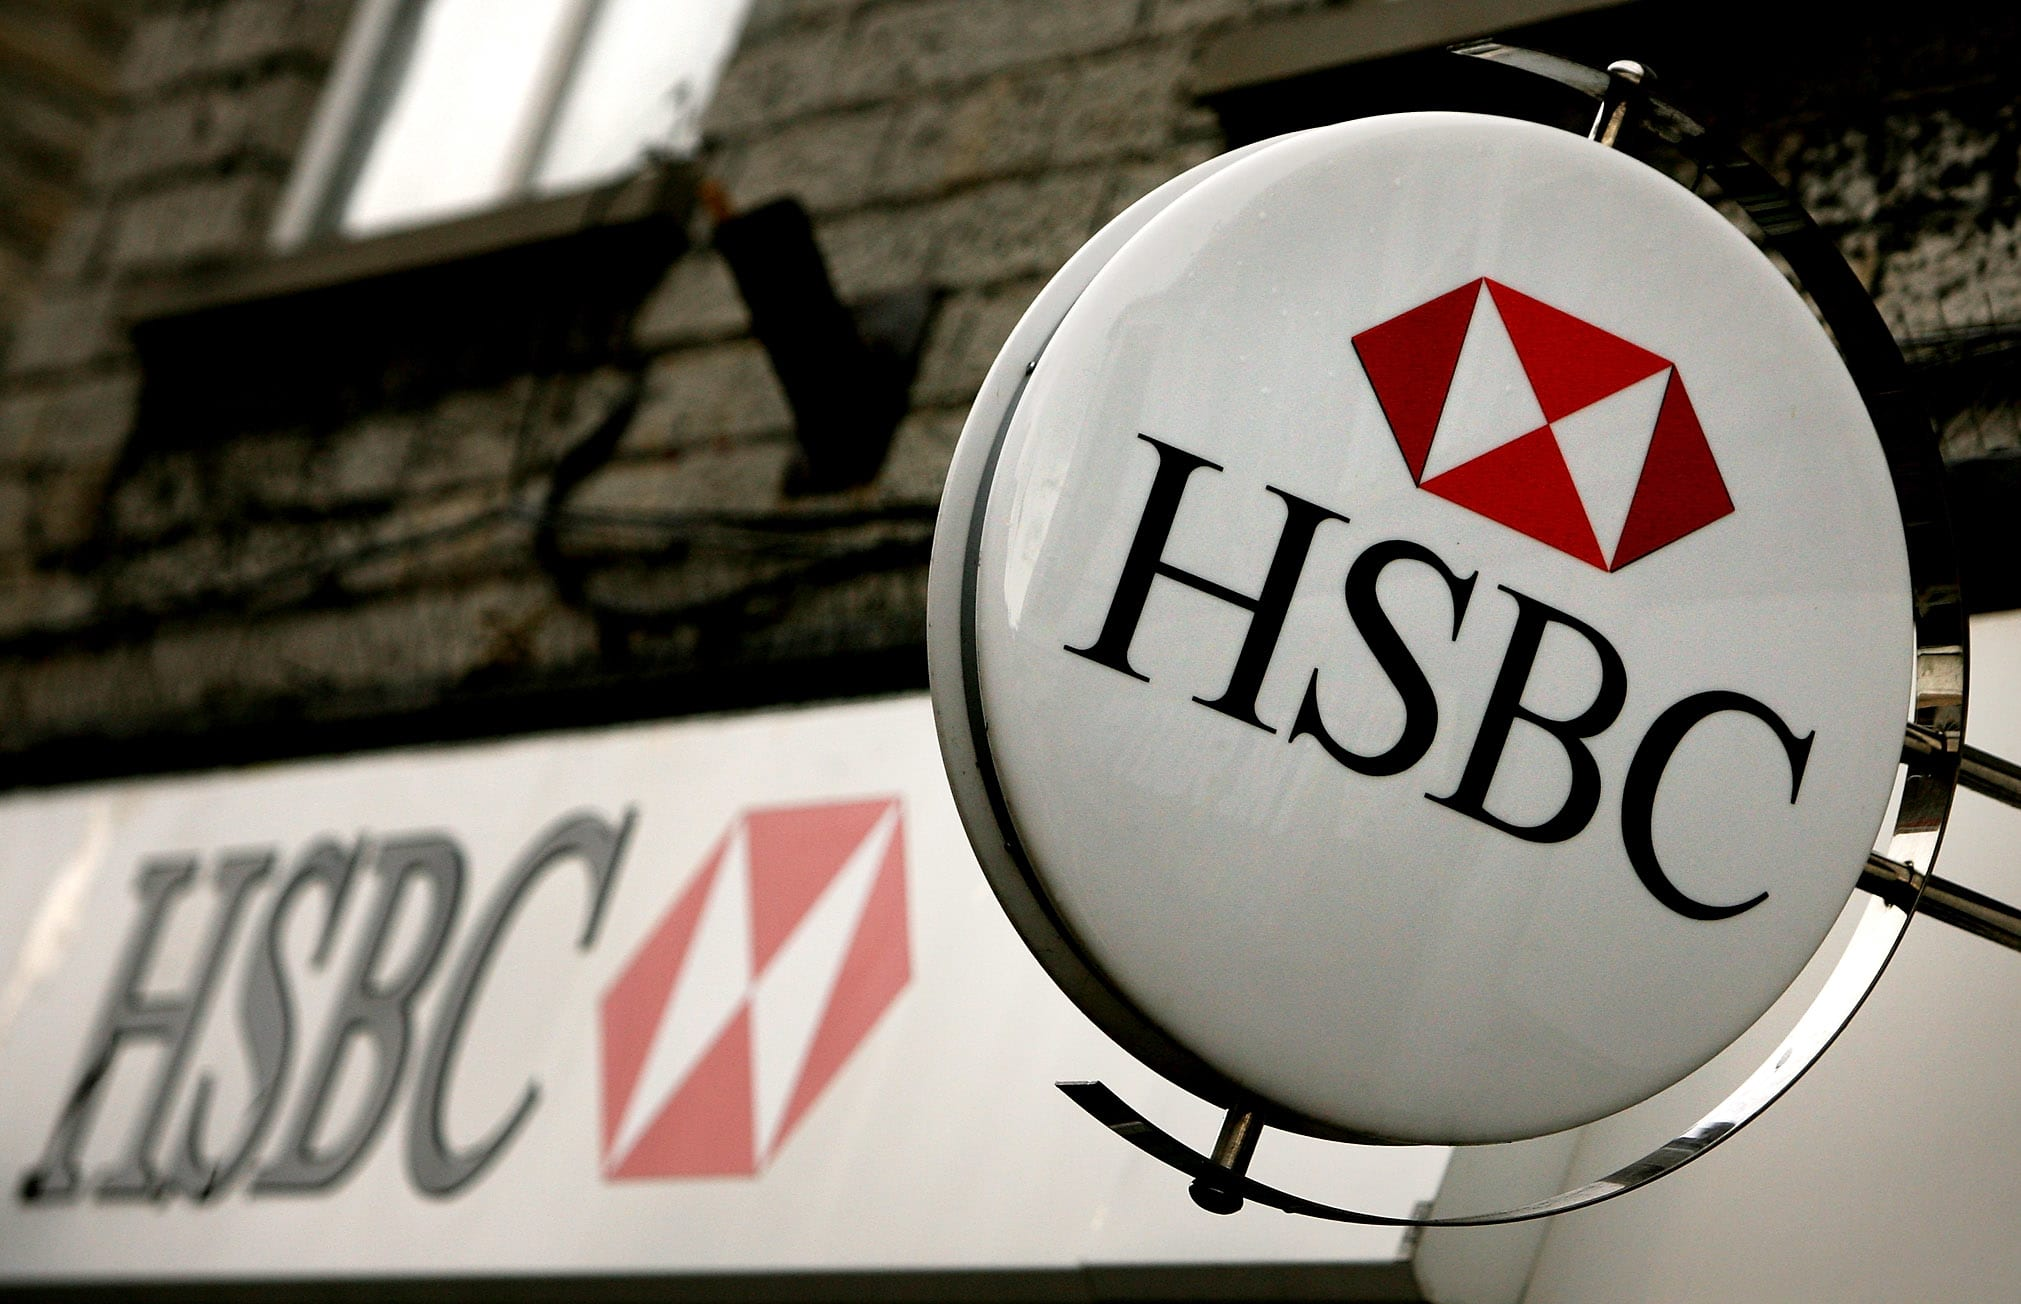 HSBC's pre-tax profit for 2019 fell 33% to $13.35 billion, missing expectations